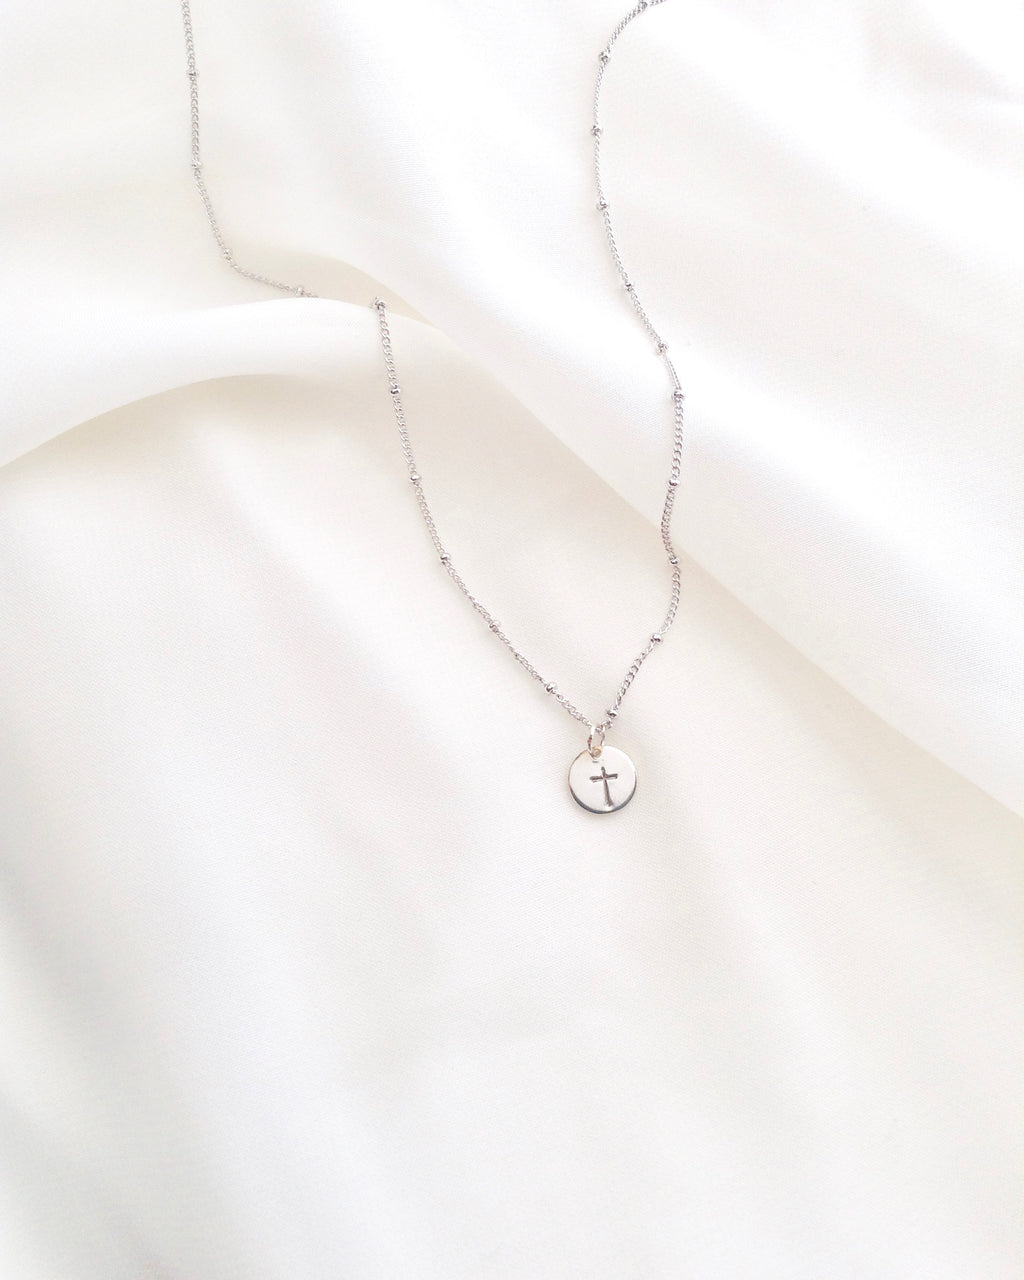 Dew Drop Cross Necklace | Delicate Minimalist Cross Necklace | IB Jewelry